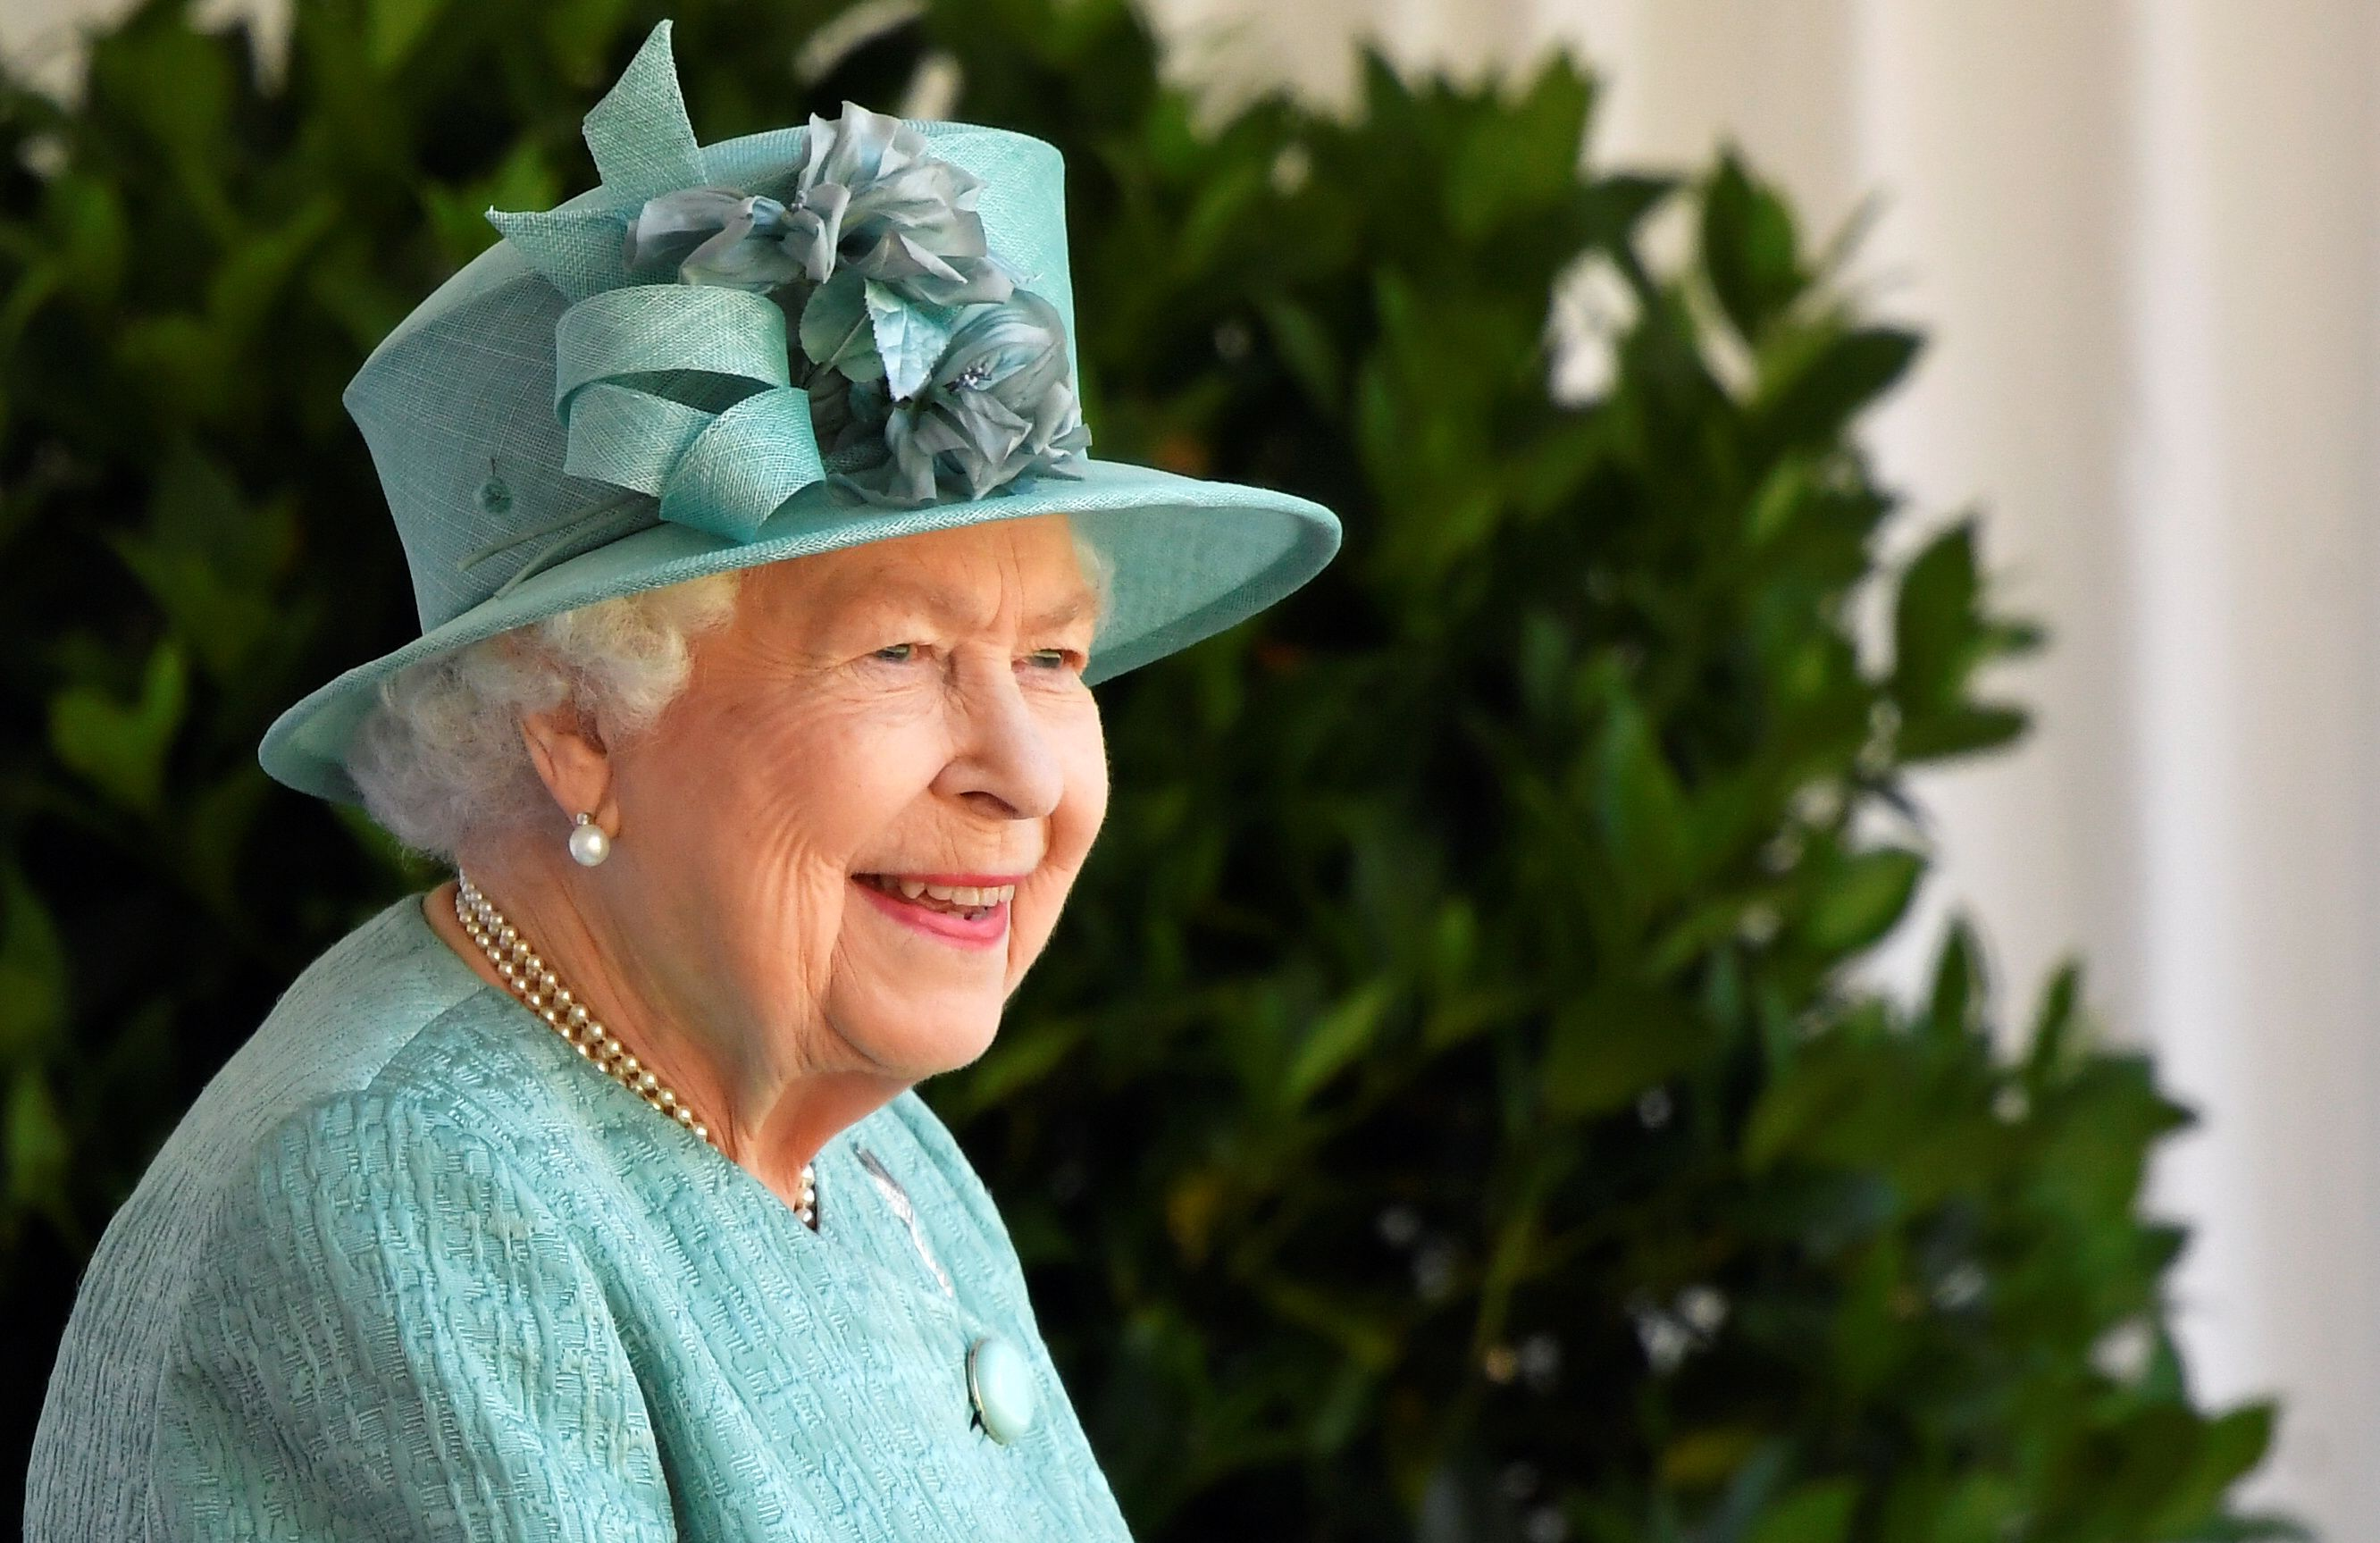 Queen Elizabeth II at a ceremony in celebration of her birthday at Windsor Castle on June 13, 2020 | Getty Images